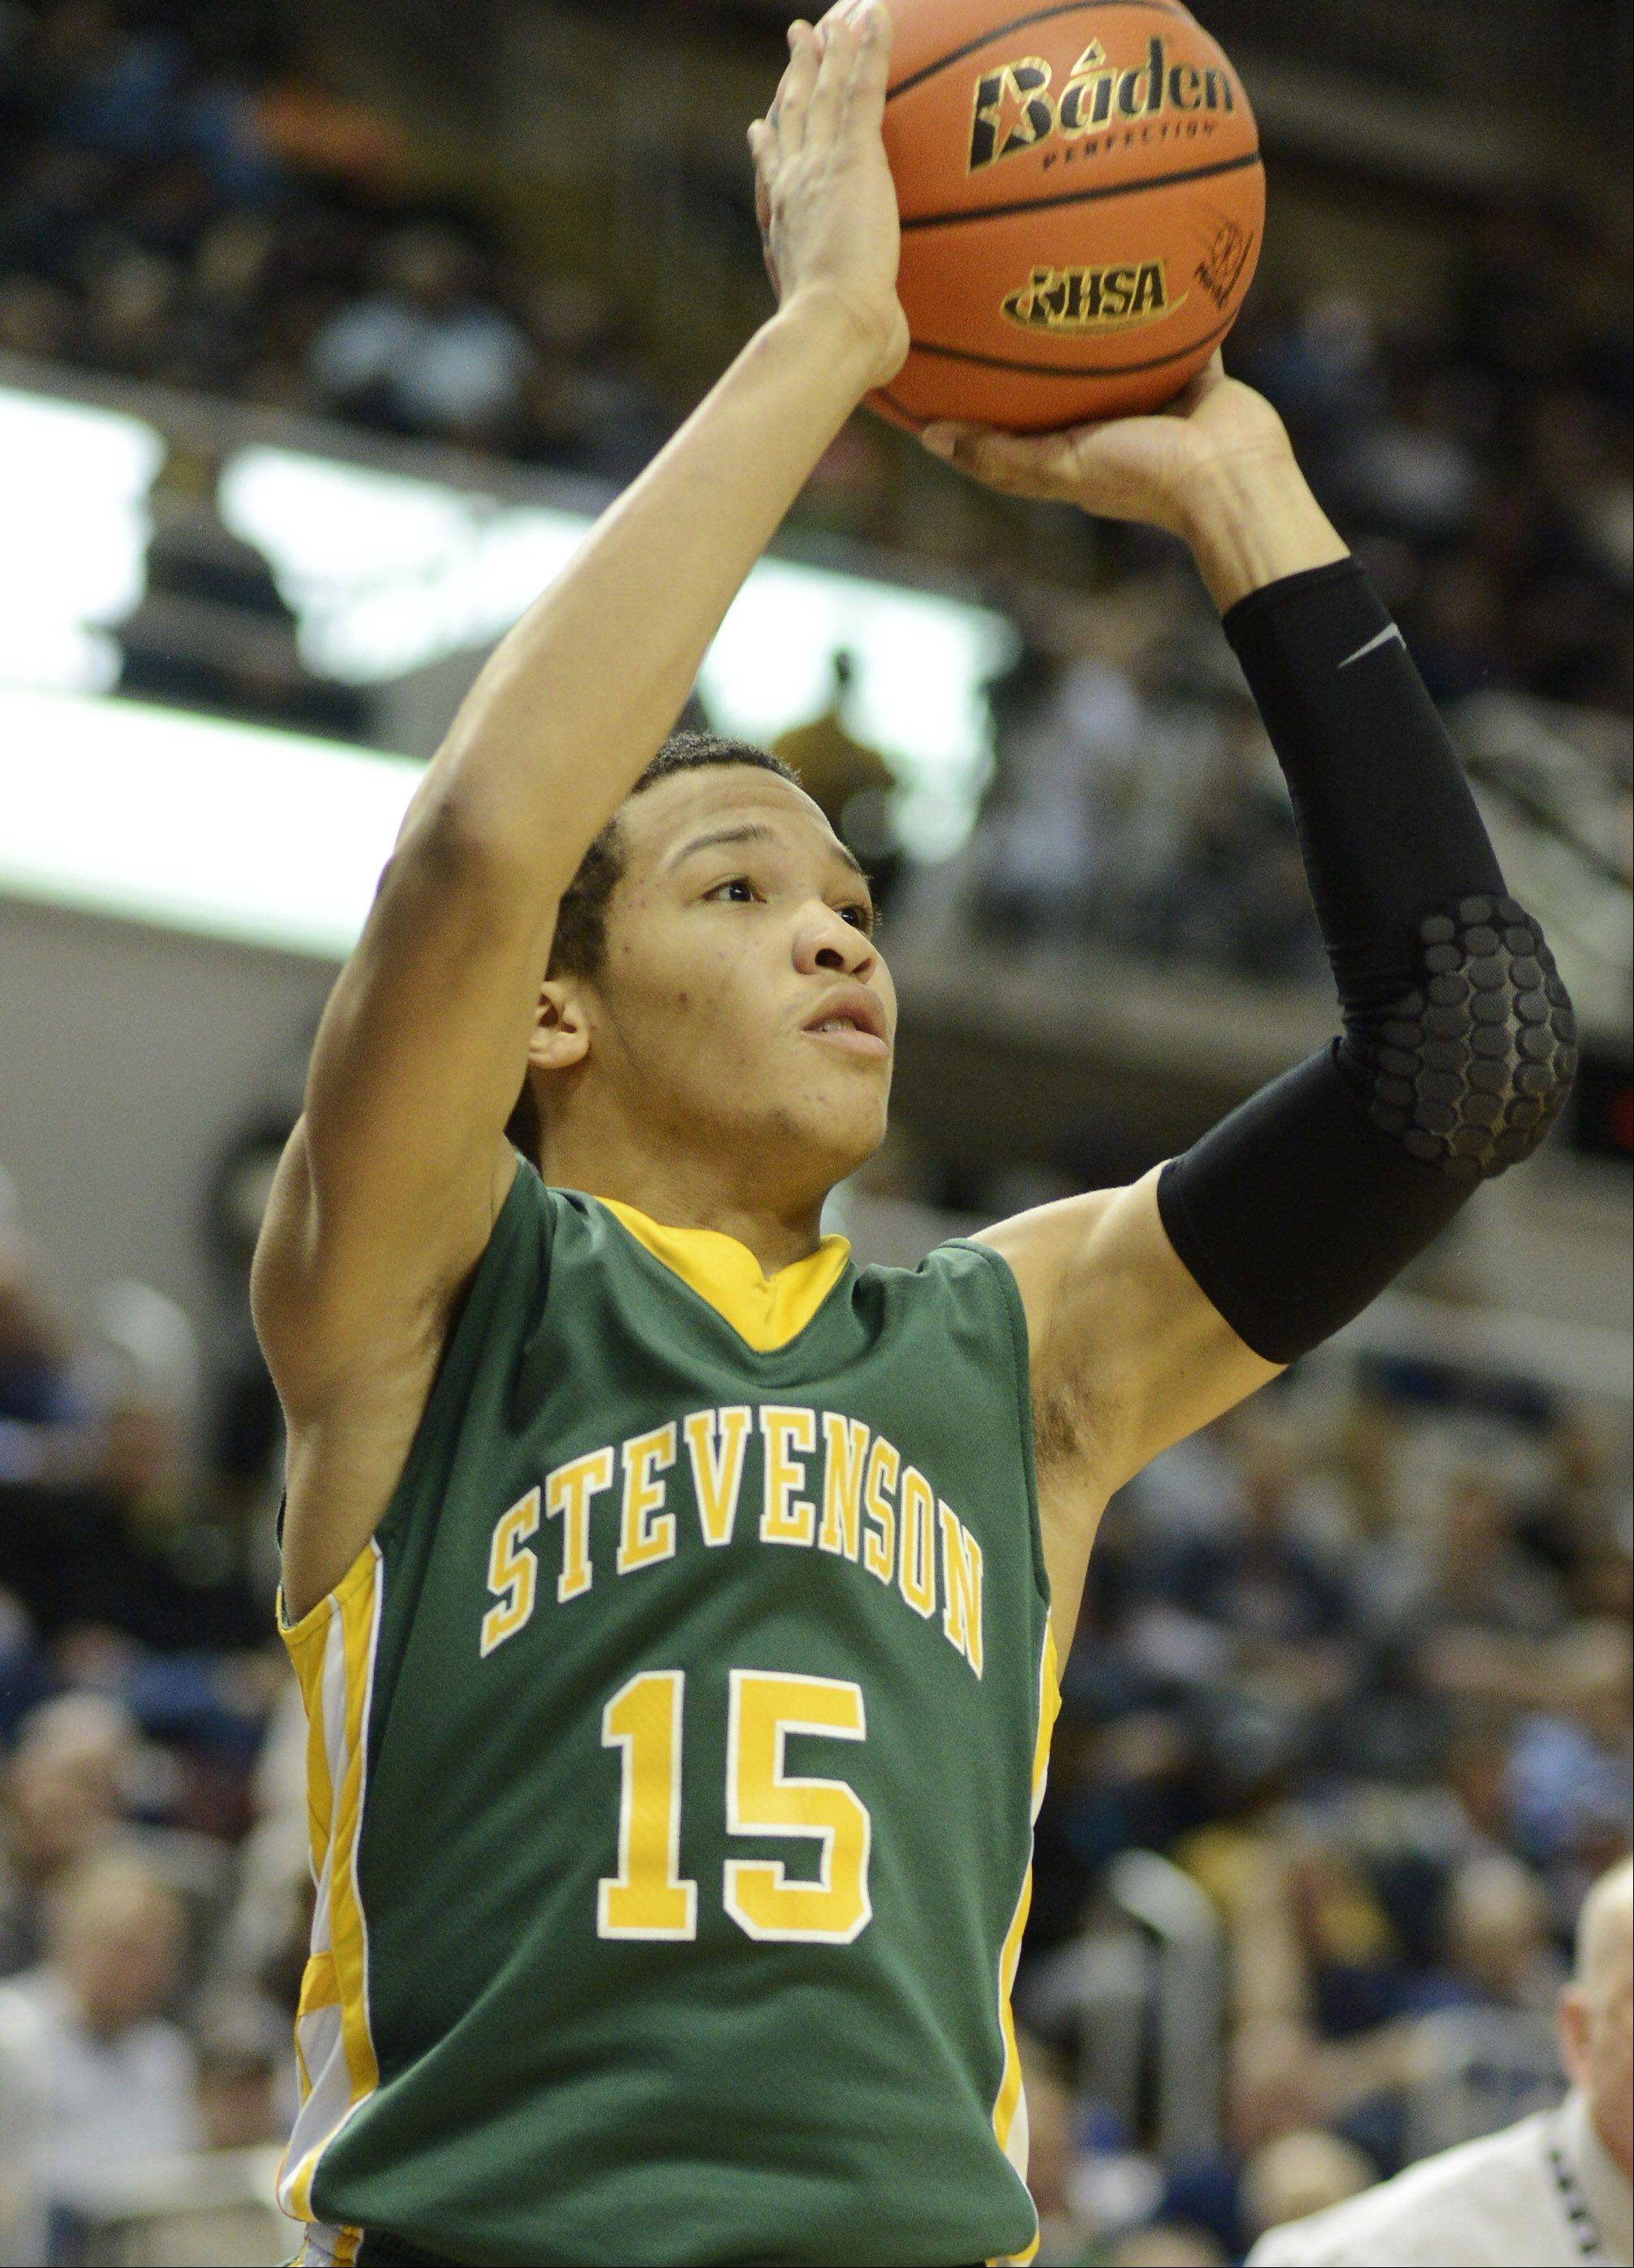 Stevenson's Jalen Brunson hits a shot from the corner.